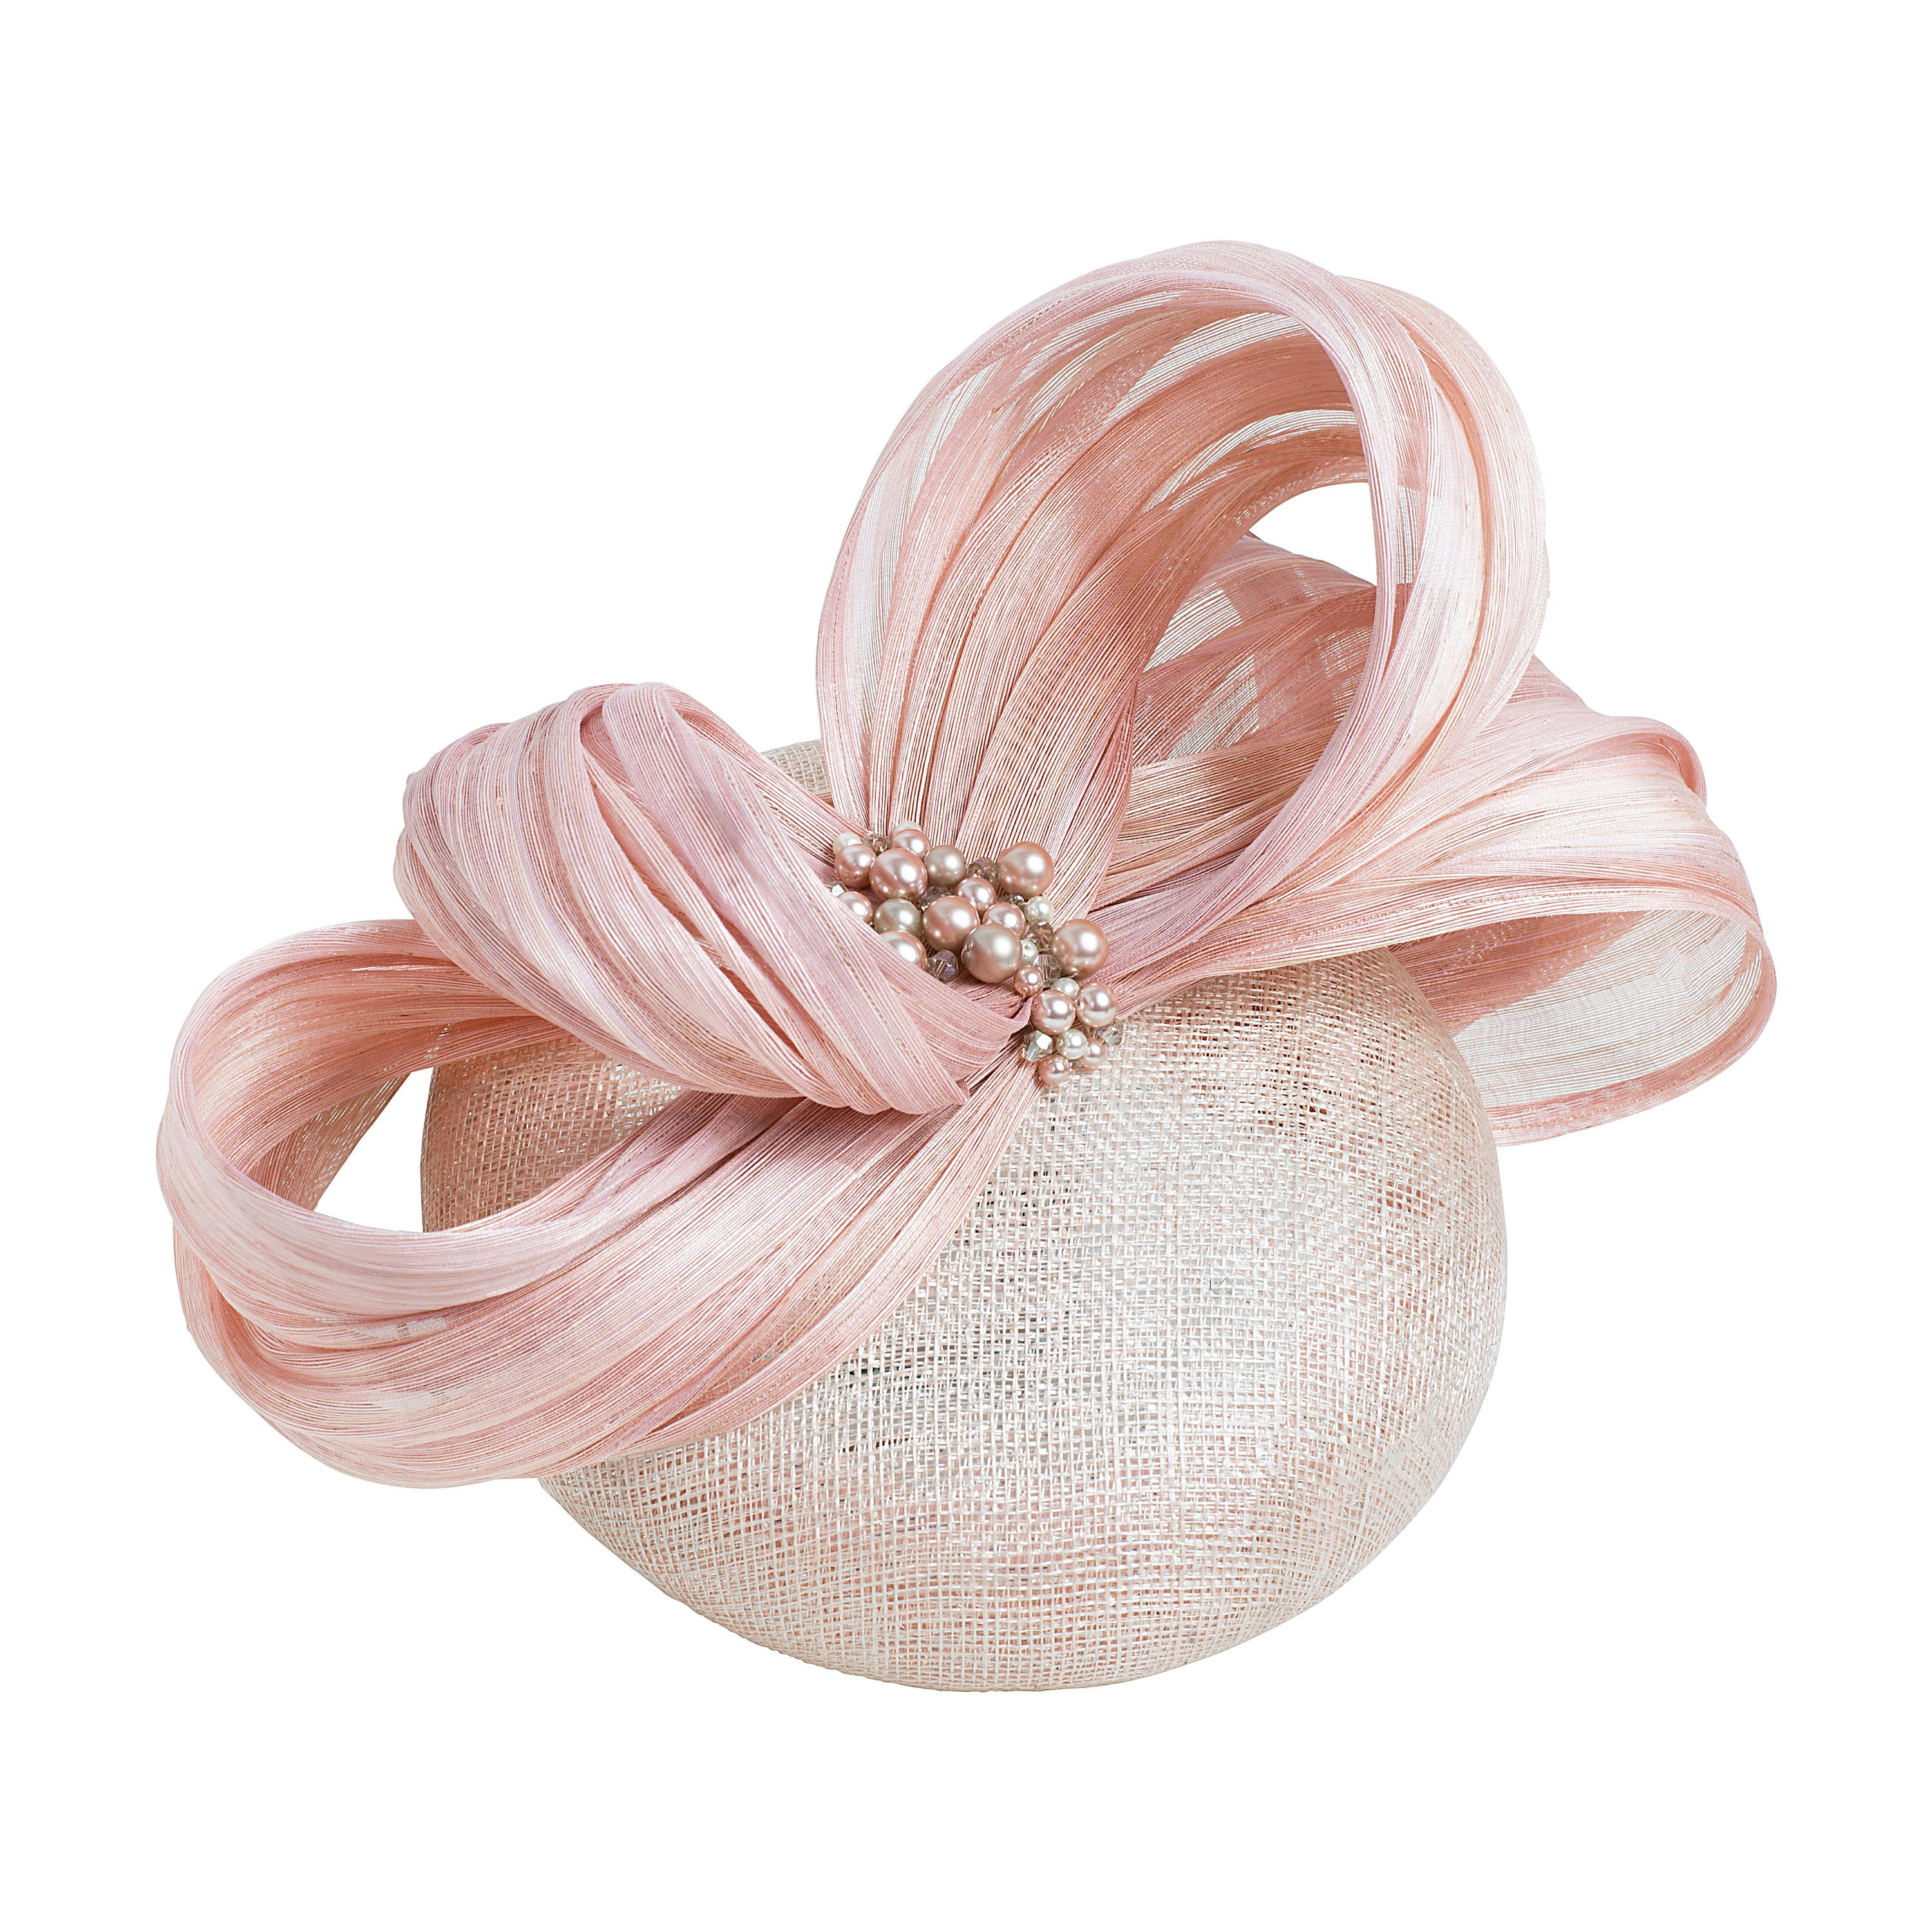 blush pink pillbox fascinator hat, ideal for wedding guest or royal ascot